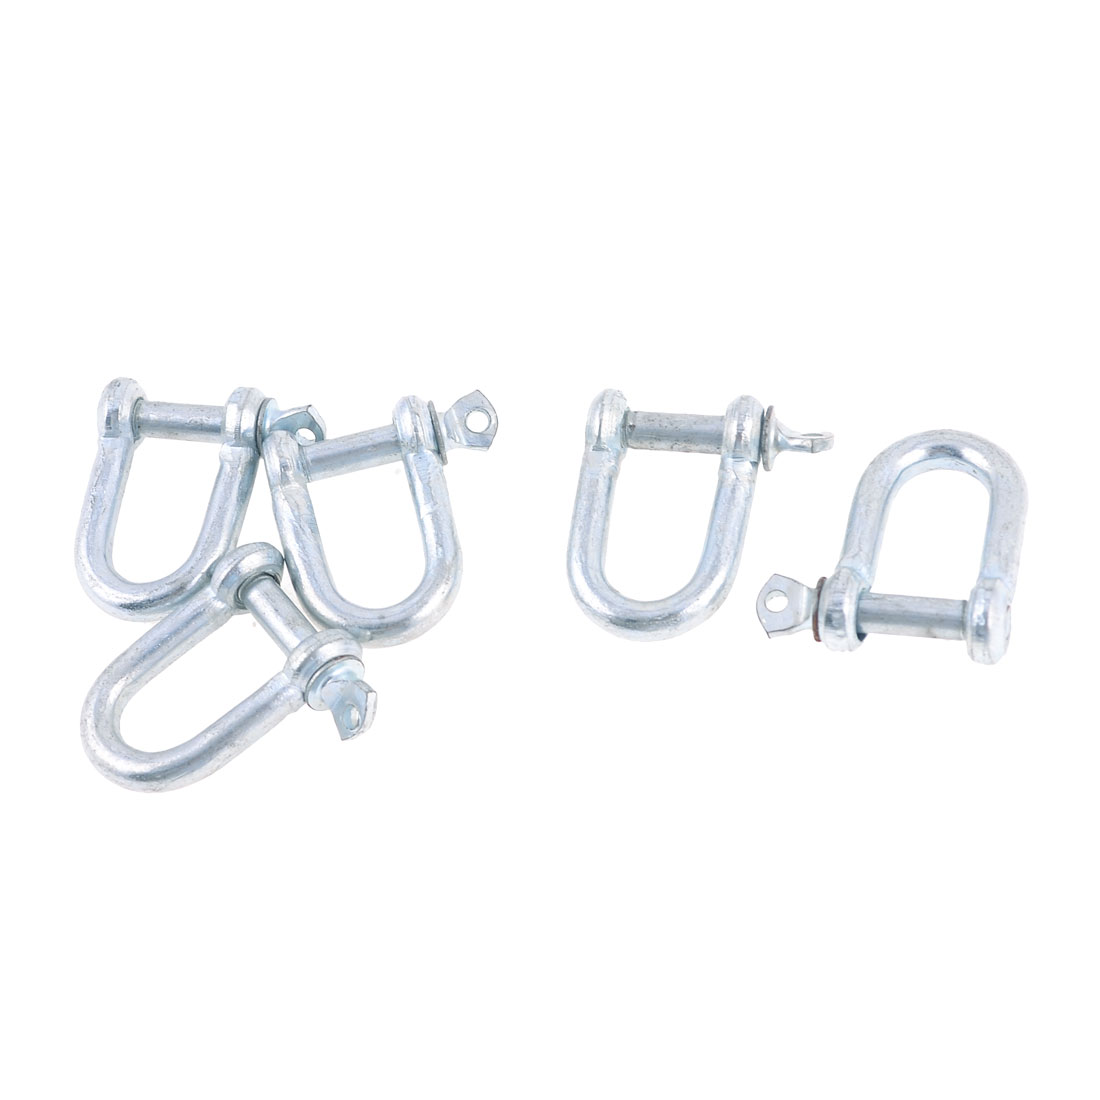 "5Pcs Spare Parts 6mm 15/64"" Screw Pin Chain Wire D Anchor Shackle"